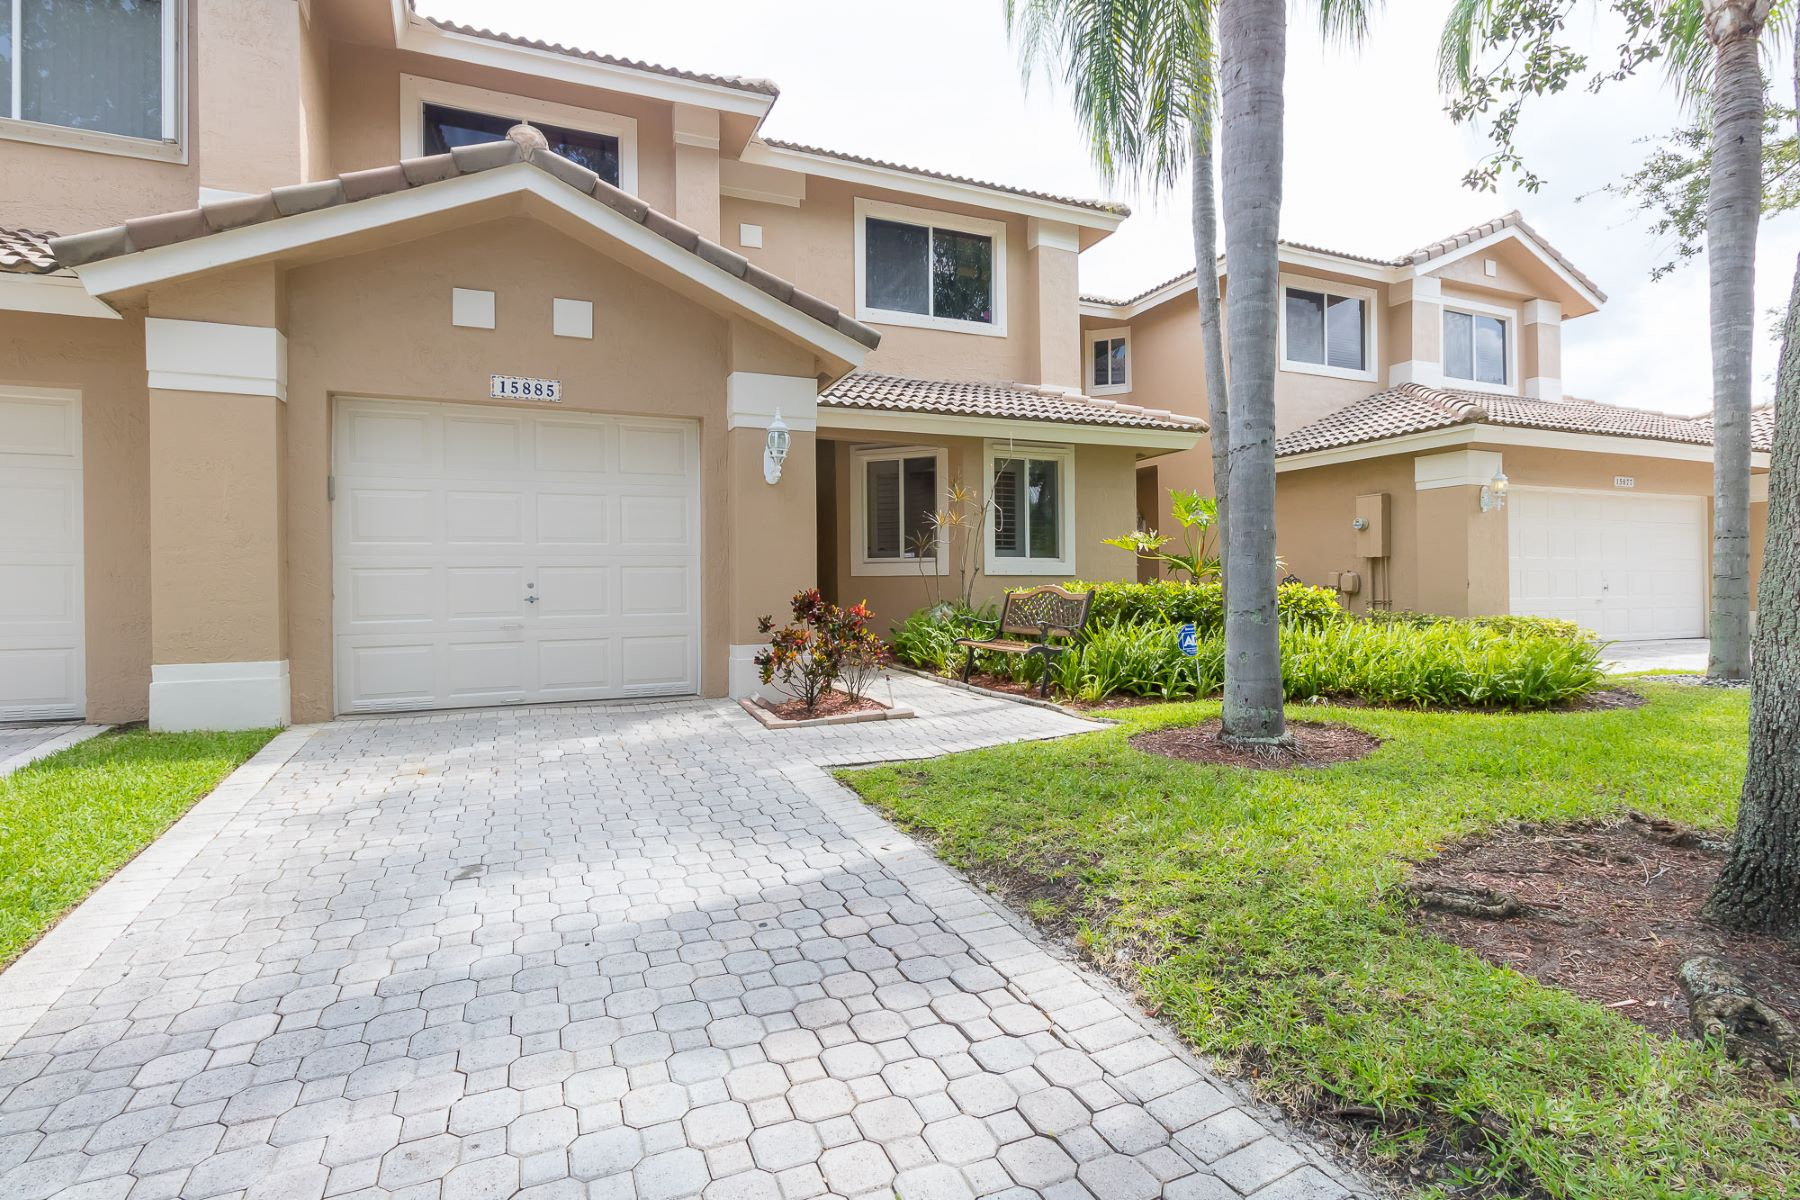 Condominiums for Sale at 15885 Sw 11th St 3-32 Pembroke Pines, Florida 33027 United States